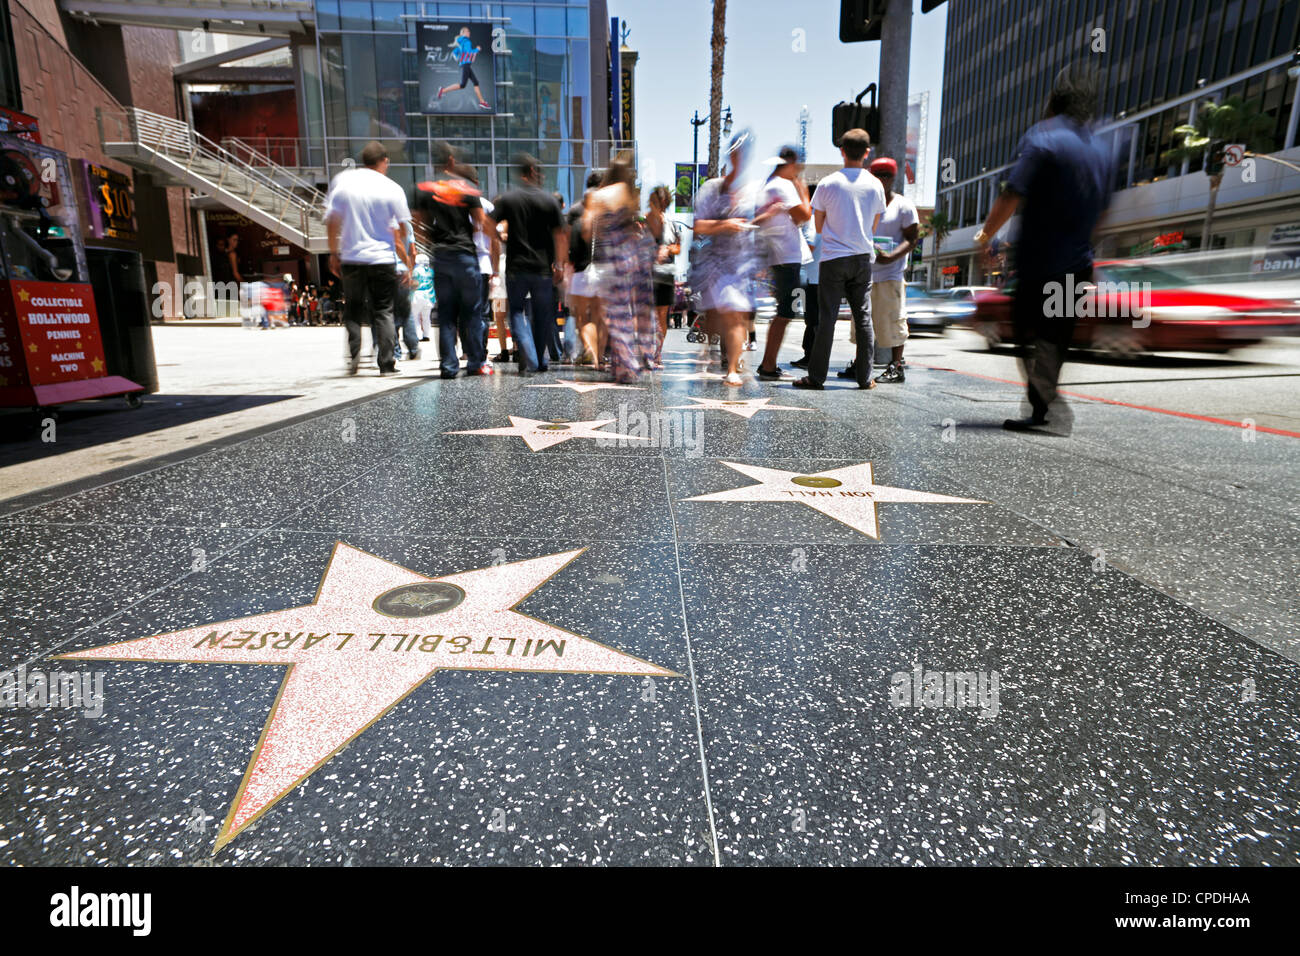 Walk of Fame, Hollywood Boulevard, Los Angeles, California, United States of America, North America - Stock Image